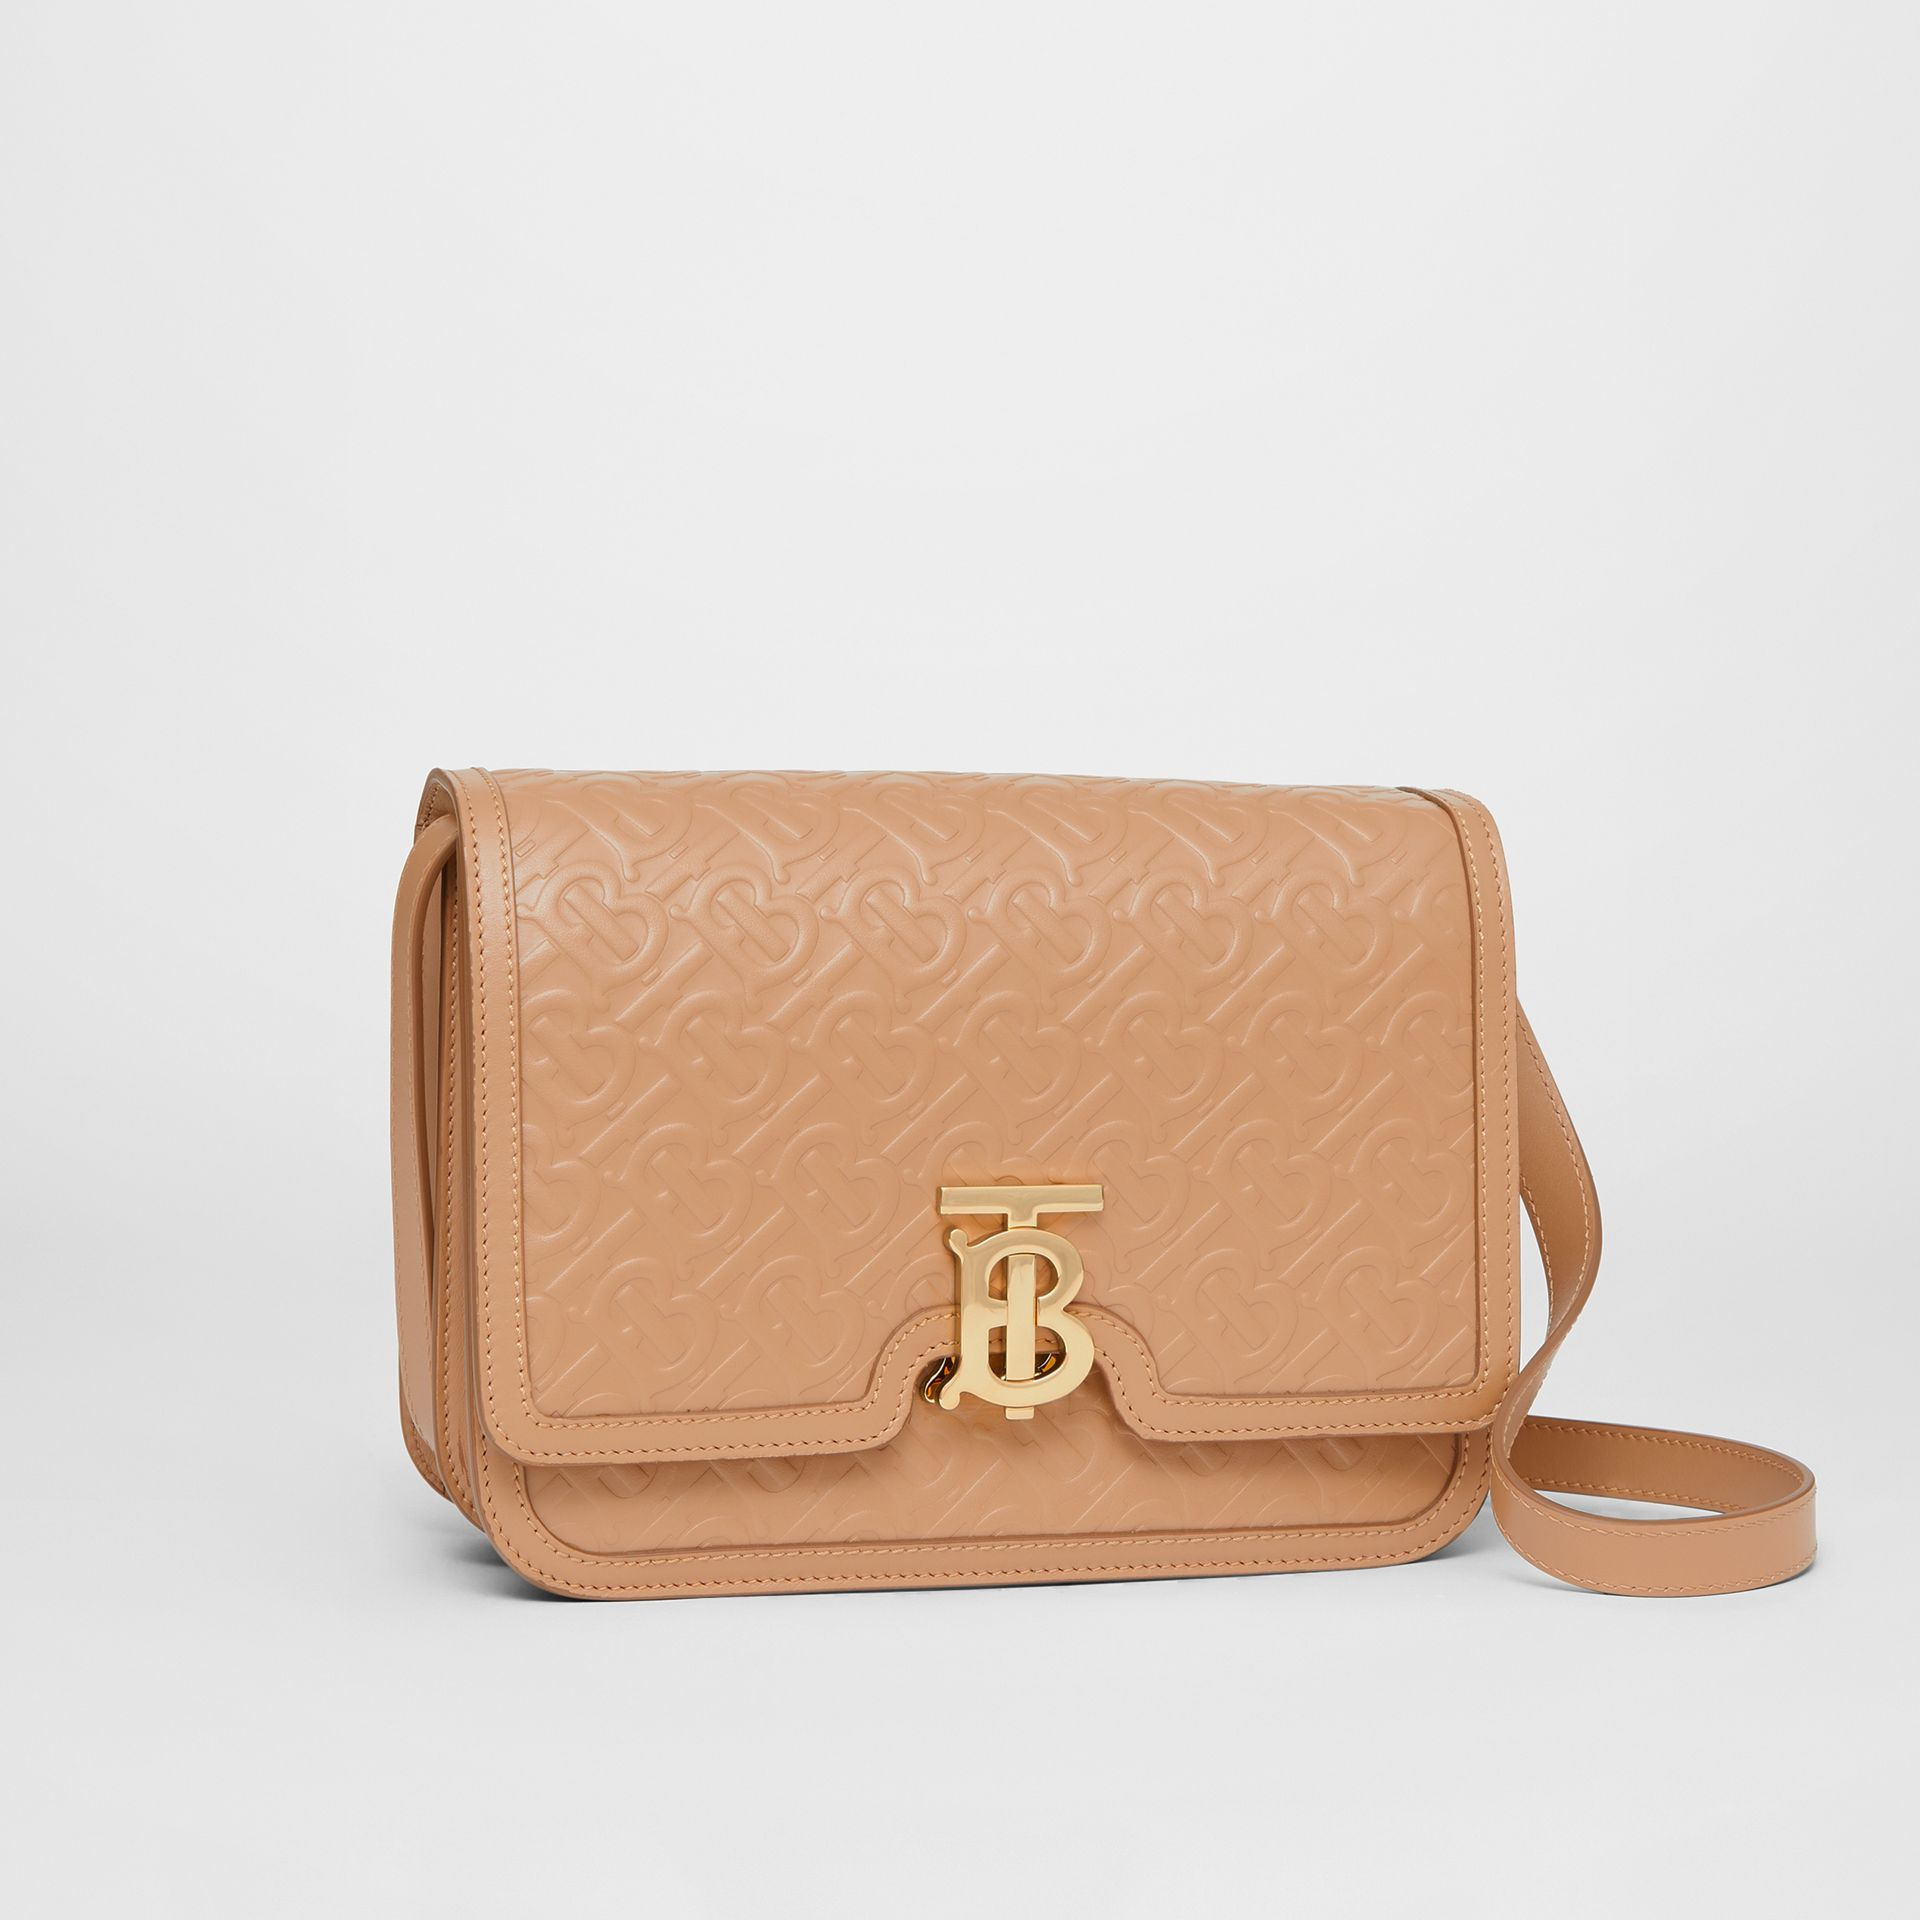 Medium Monogram Leather TB Bag in Light Camel - Women | Burberry United Kingdom - gallery image 6